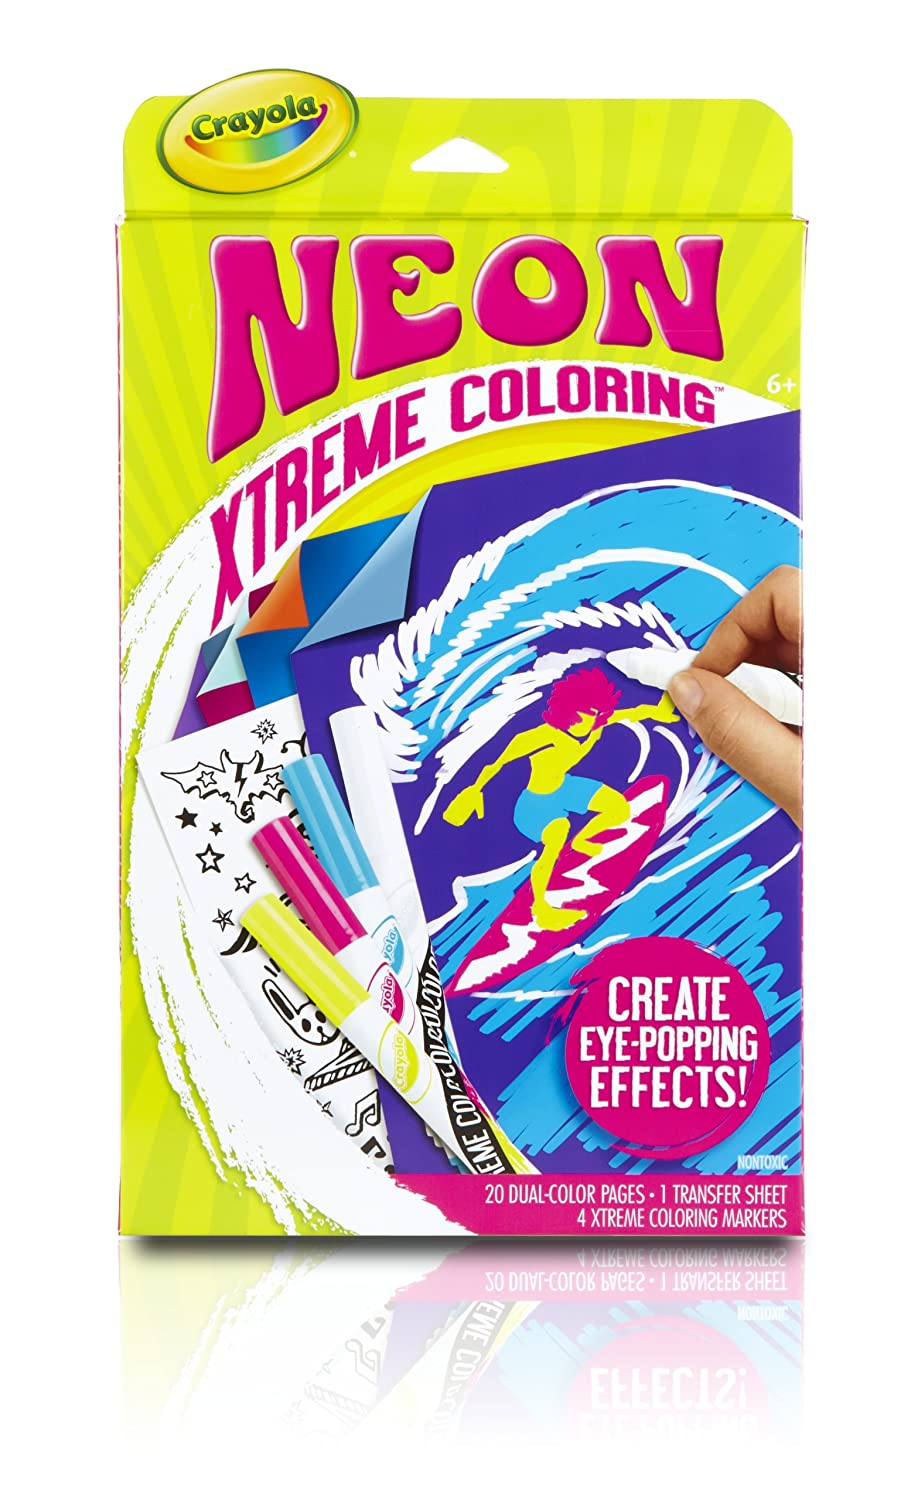 Amazon.com: Crayola Neon Extreme Coloring Kit: Toys & Games